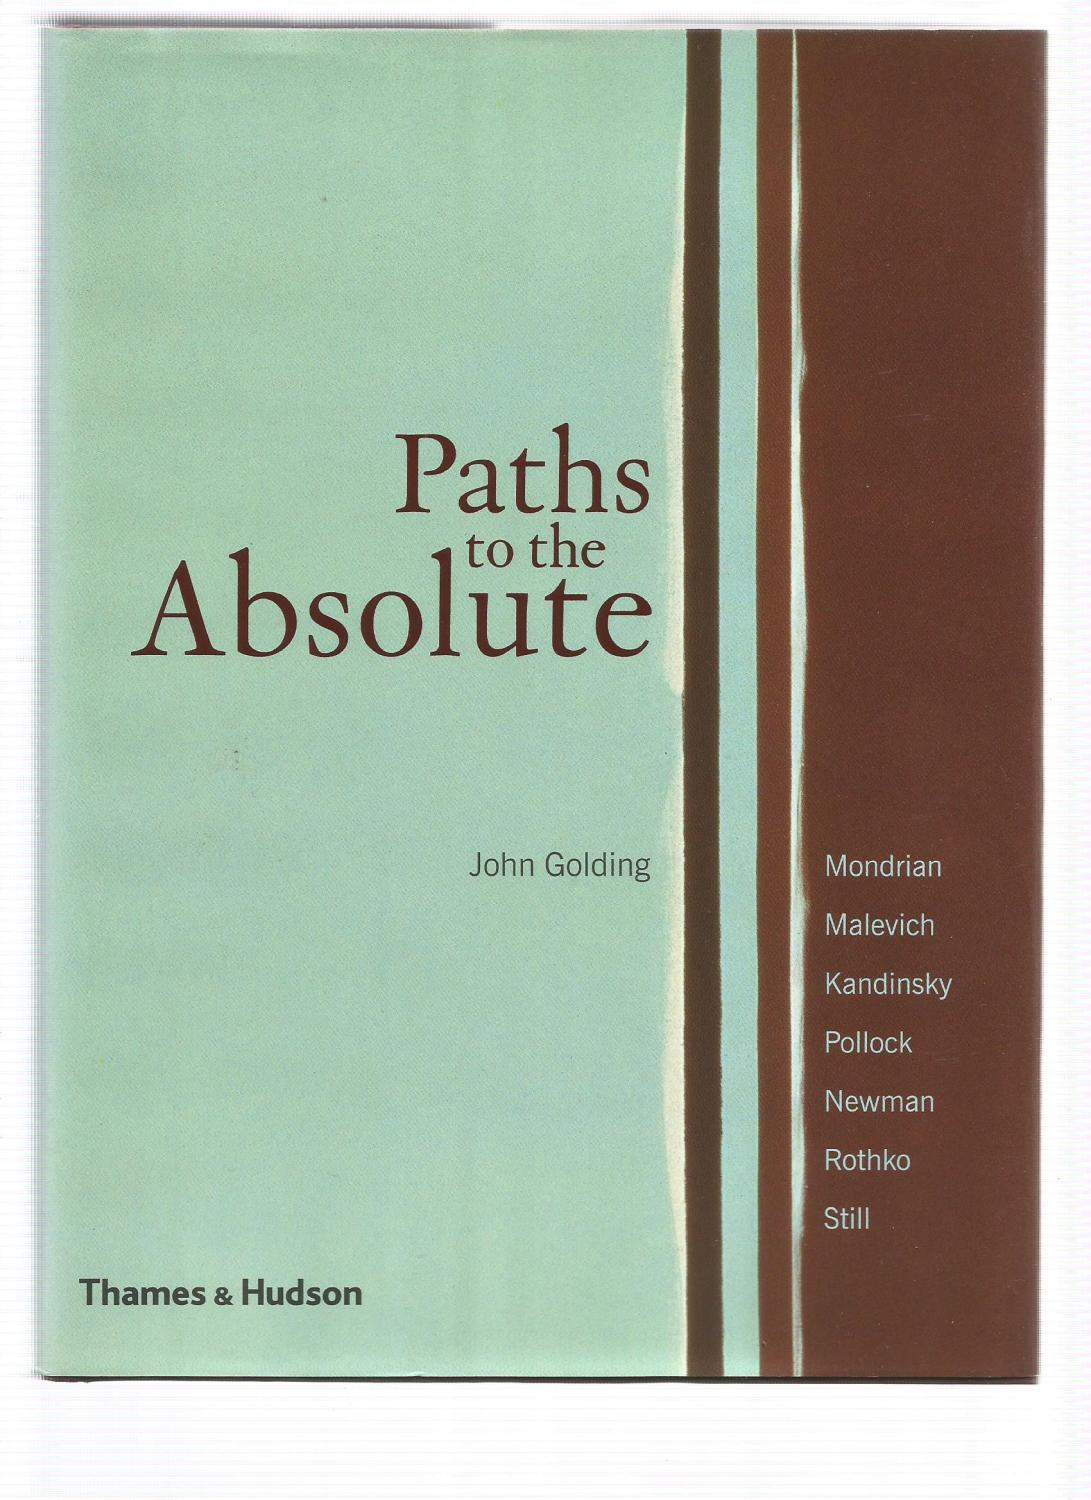 Paths to the Absolute: Mondrian, Malevich, Kandinsky, Pollock, Newman, Rothko and Still